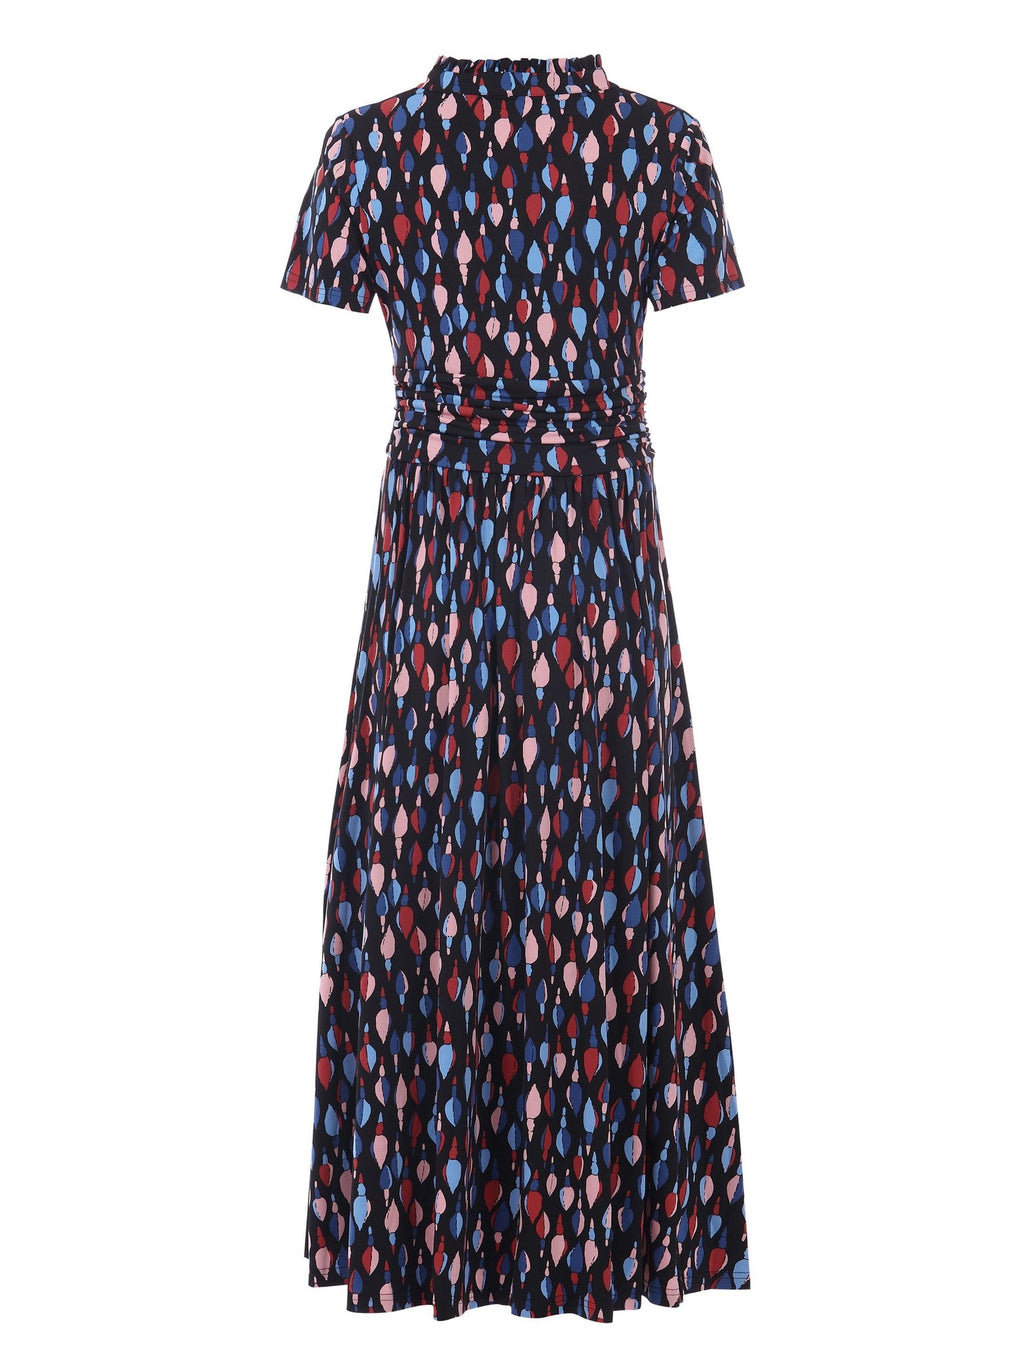 Retro Multi Print Dress - PRE-ORDER